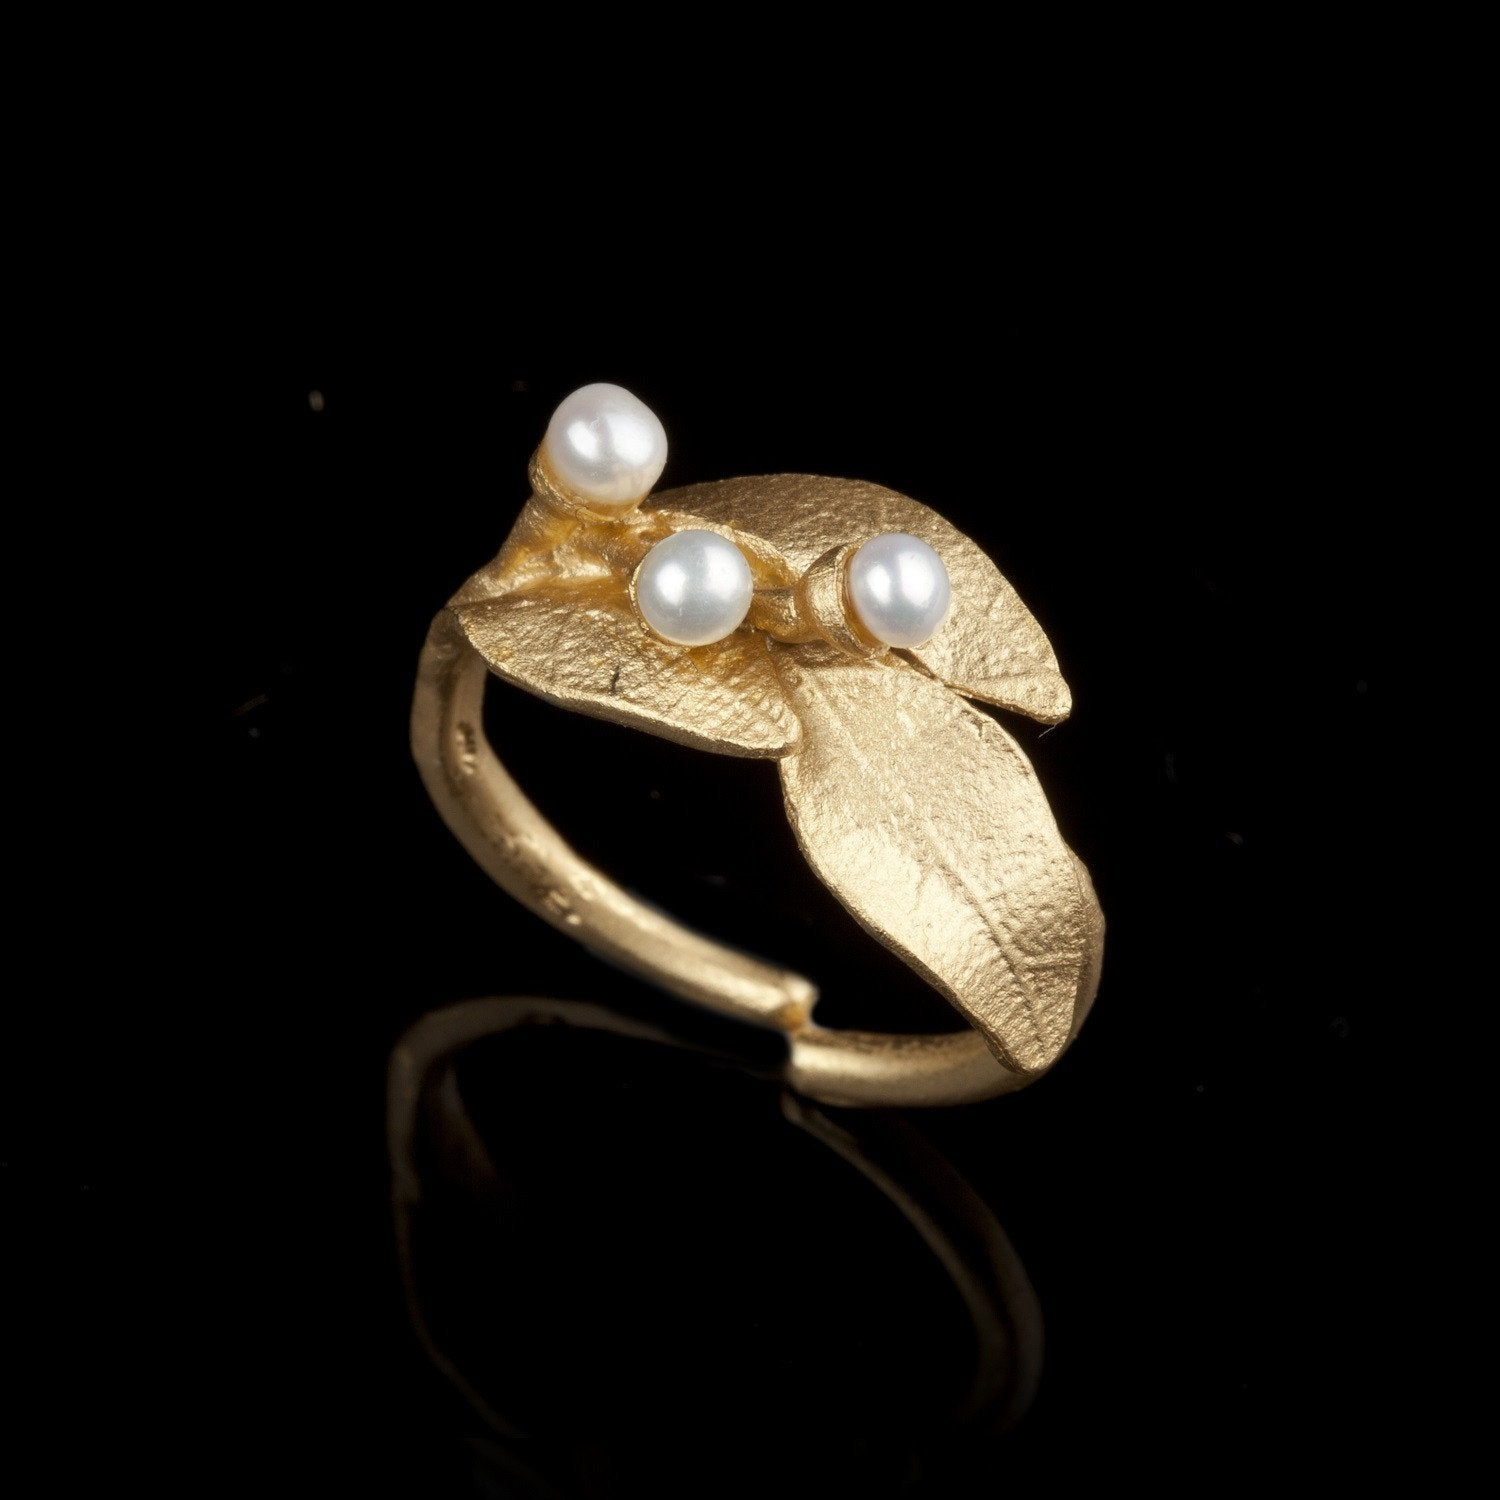 The Bay Laurel ring is cast in bronze with 24kt. gold plate and accented with white freshwater pearls.